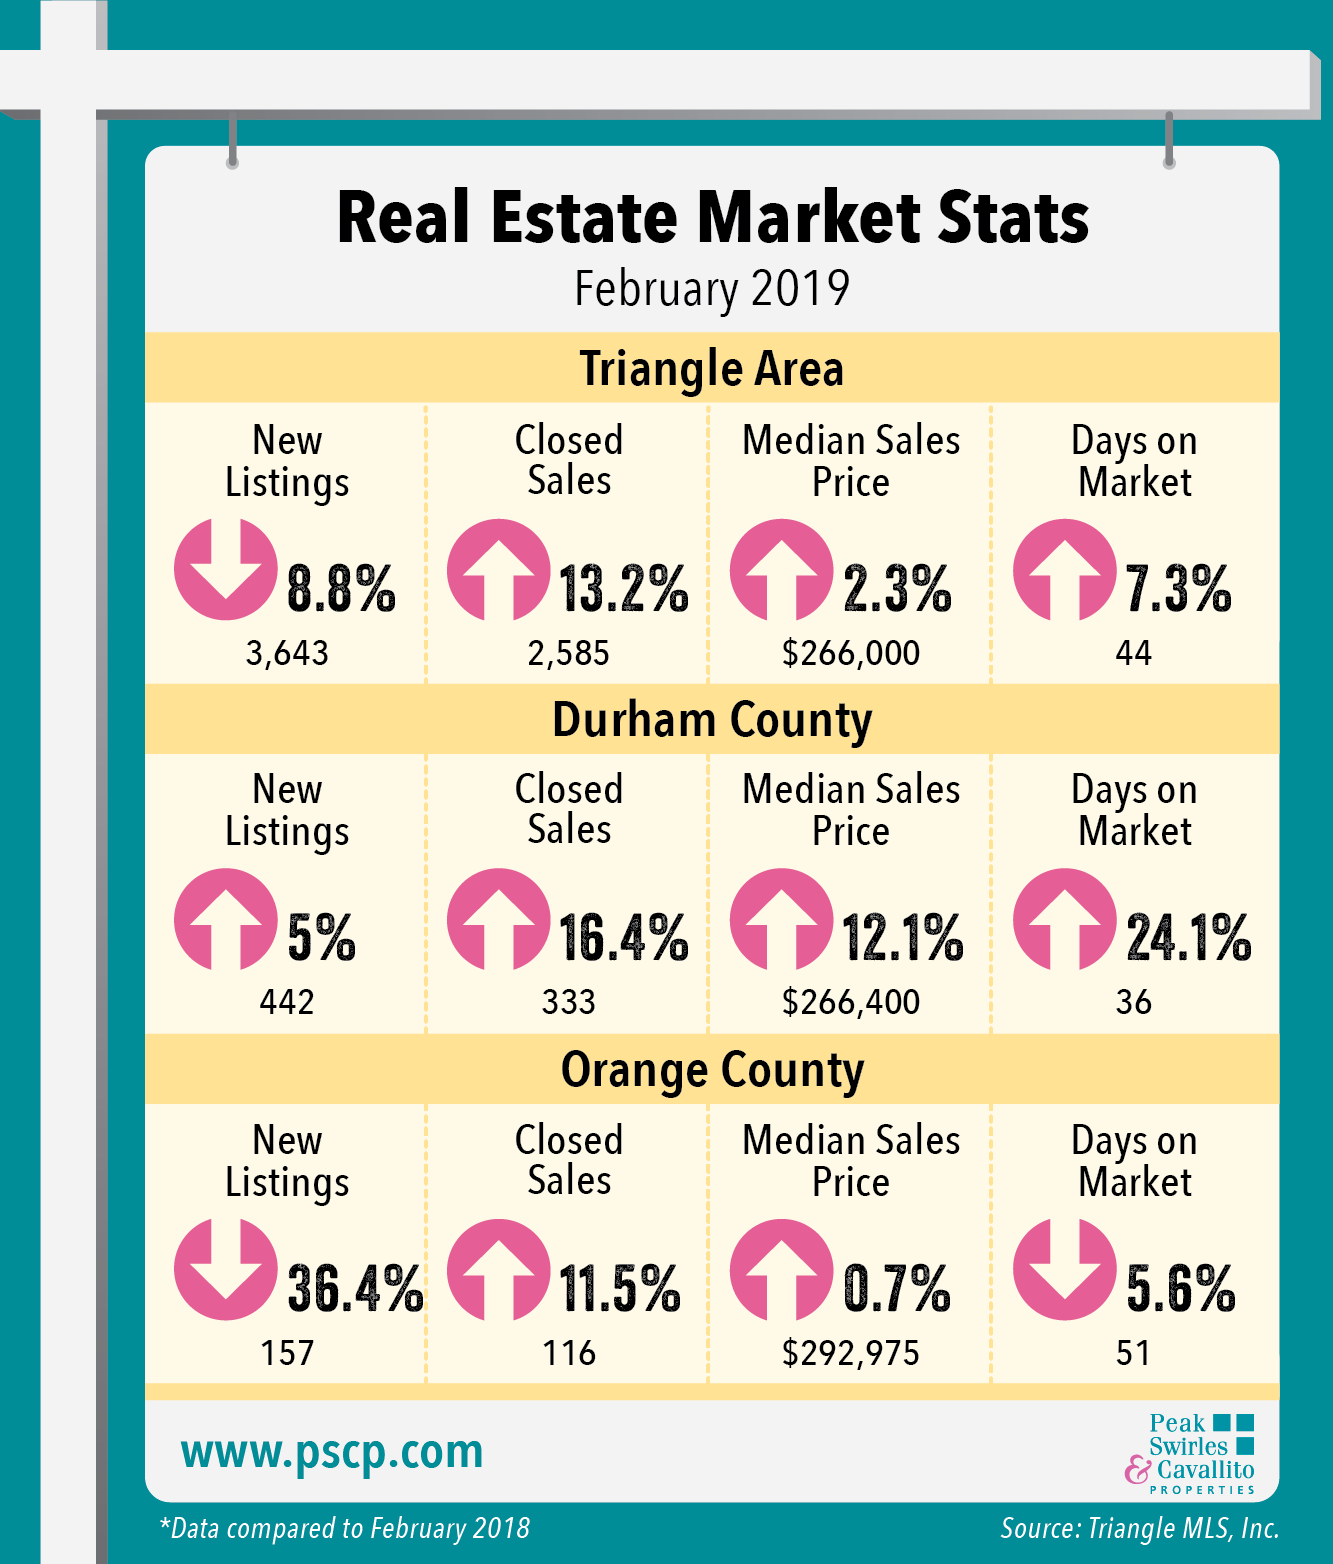 Real Estate Market Stats - February 2019